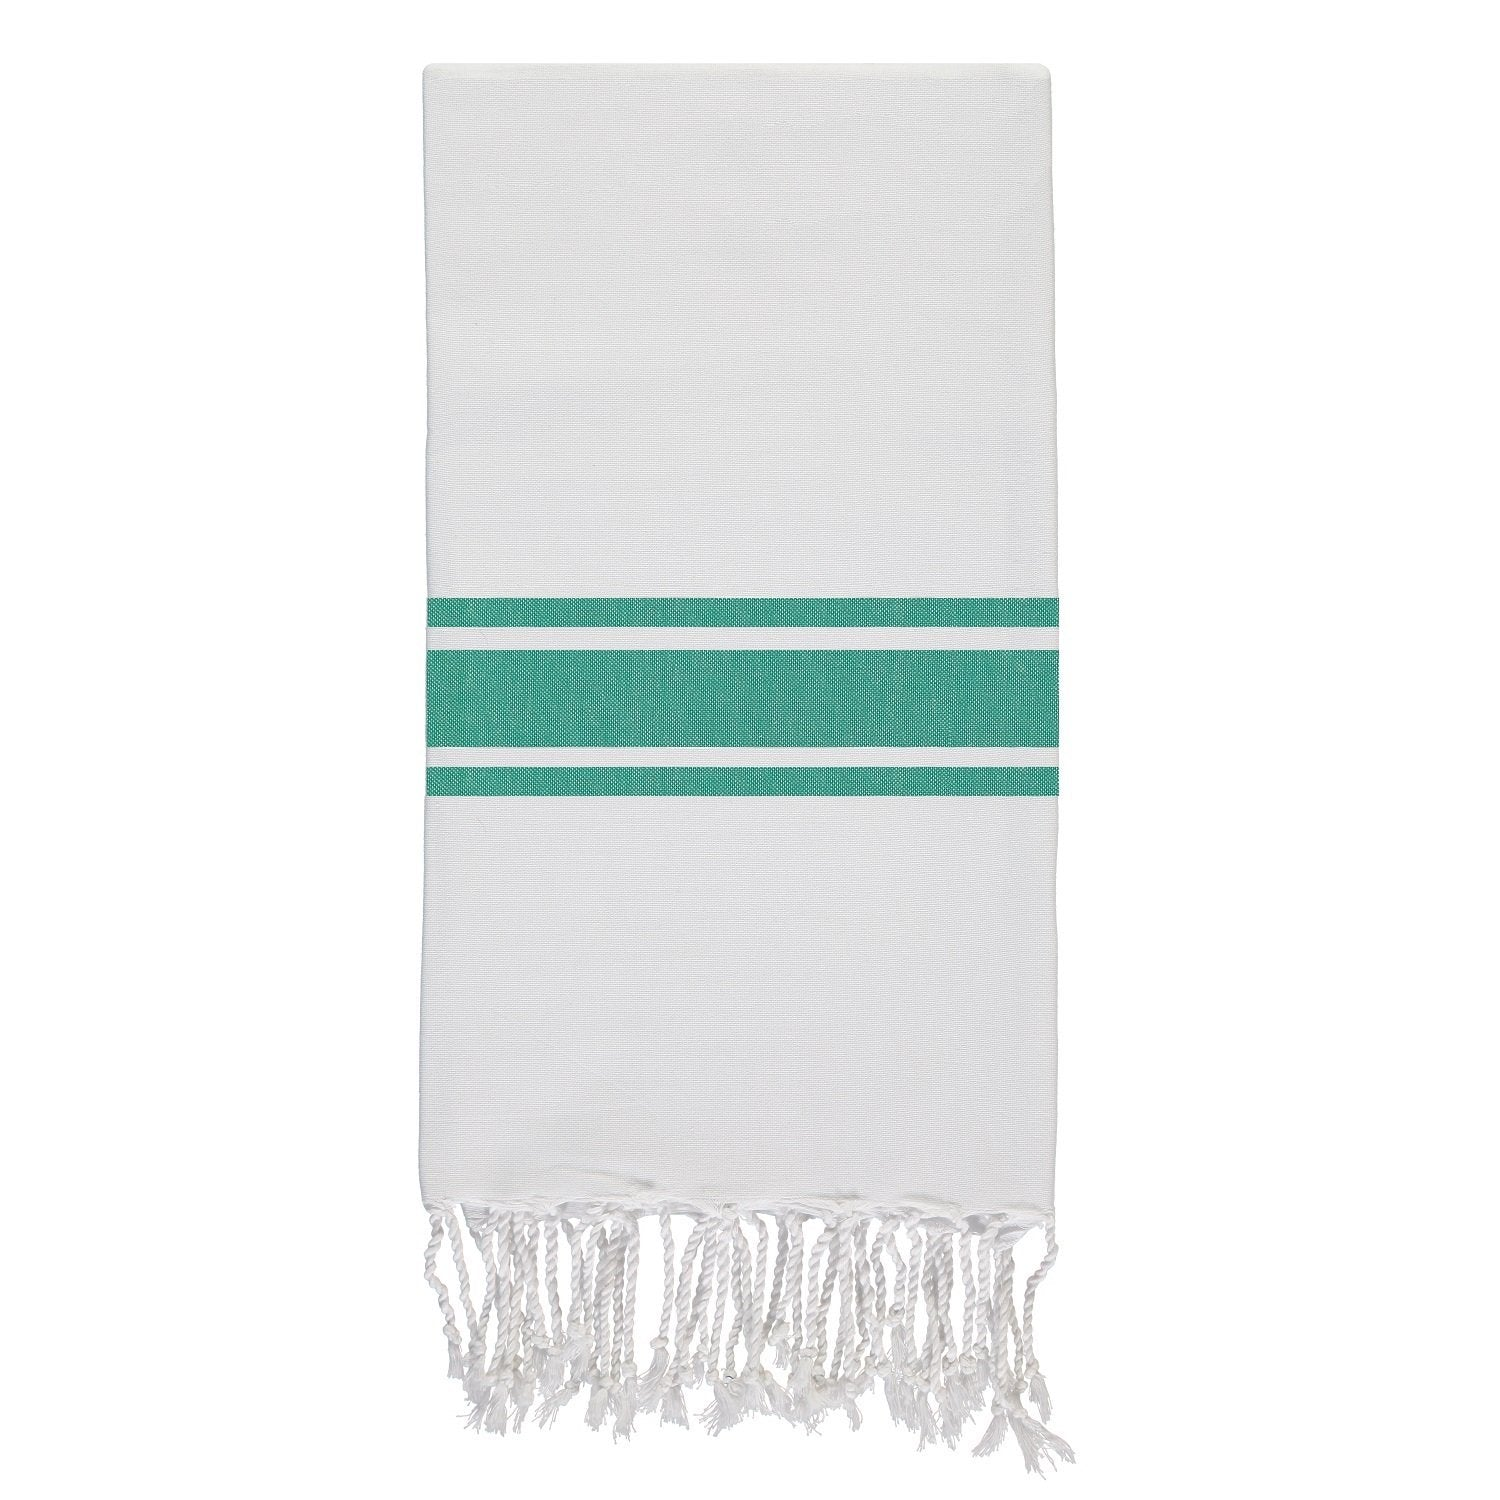 Emerald Green and White Hammam Towel